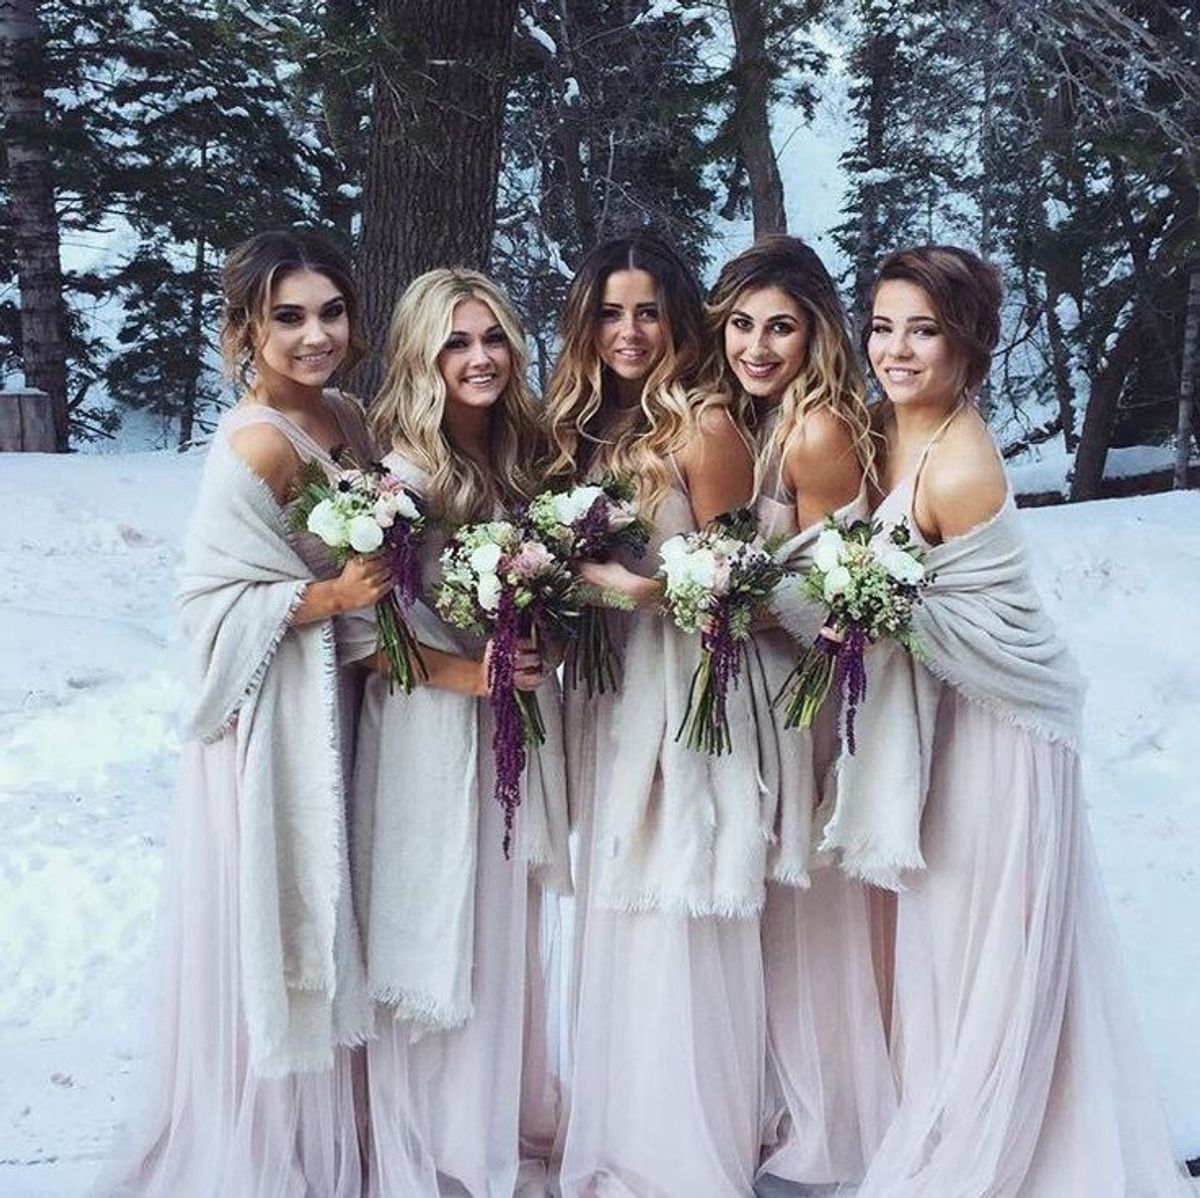 16 Thoughts You Have As A Bridesmaid